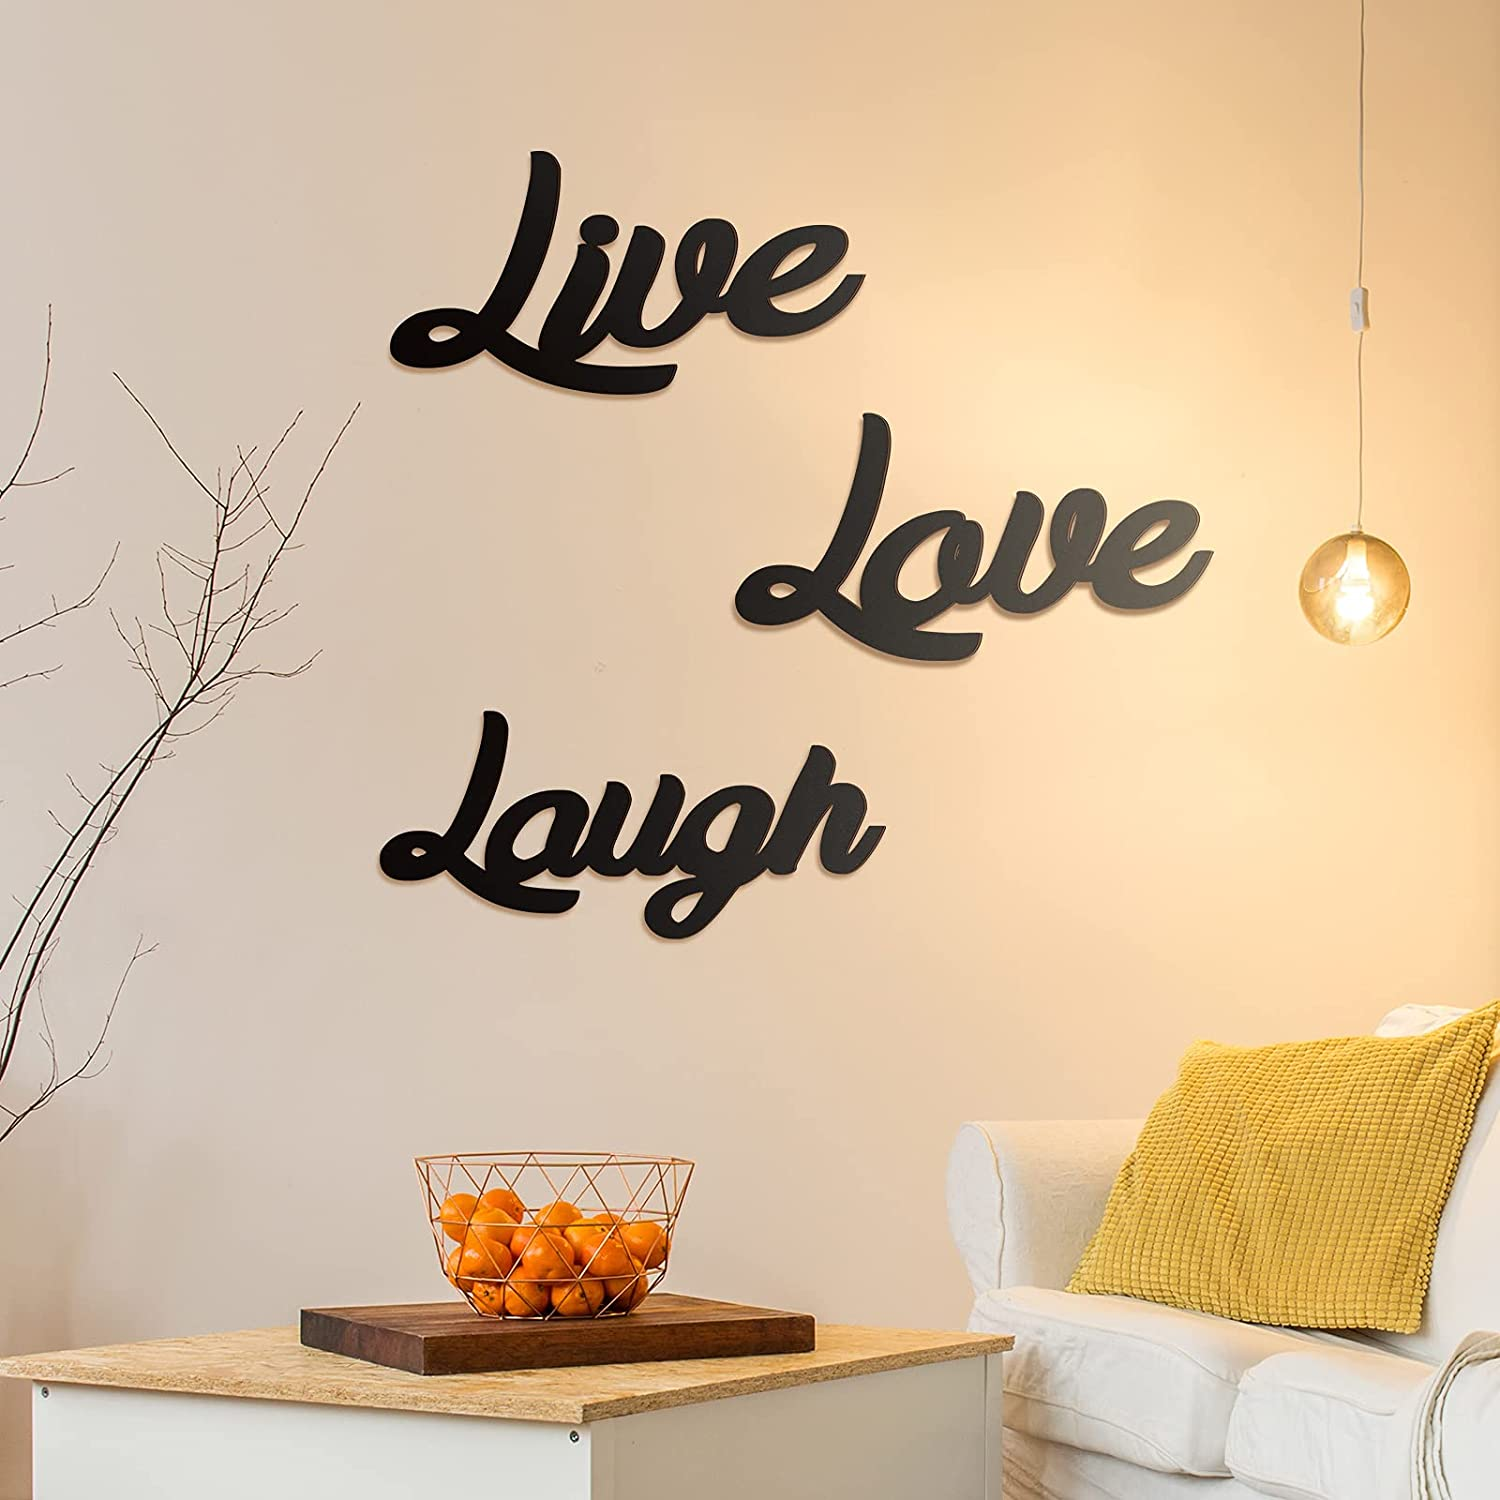 3 Pieces Wooden Cutout Sign Rustic Wood Word Sign Decorative Wooden Block Word Signs Wooden Letter Sign Freestanding Wood Sign Farmhouse Home Decor for Living Room Wall Decor (Live, Love, Laugh)